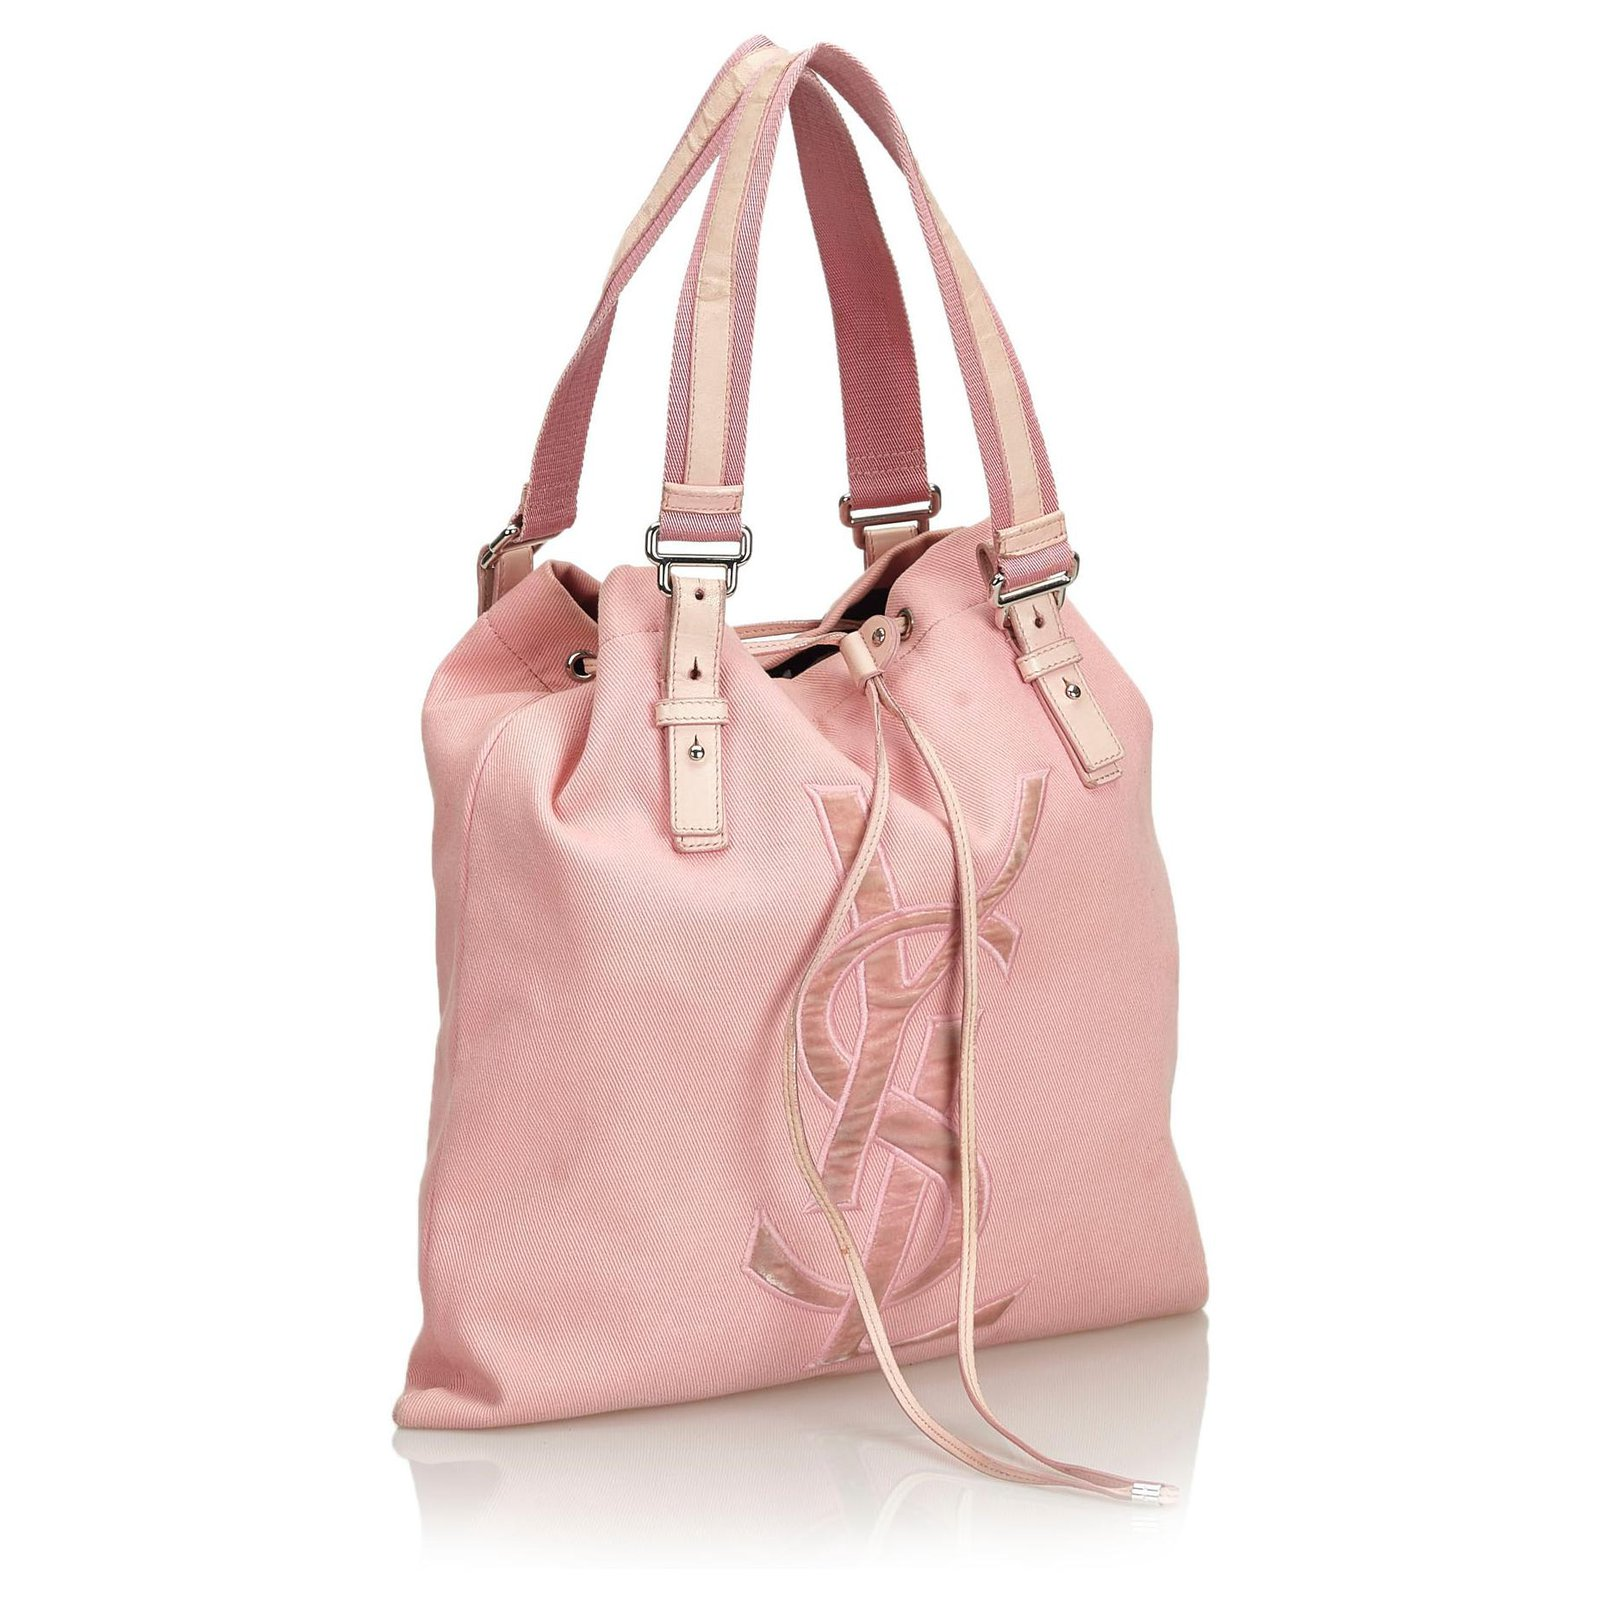 57171bcea05 Yves Saint Laurent YSL Pink Canvas Kahala Tote Totes Leather,Other,Cloth,Cloth  Pink ref.126699 - Joli Closet